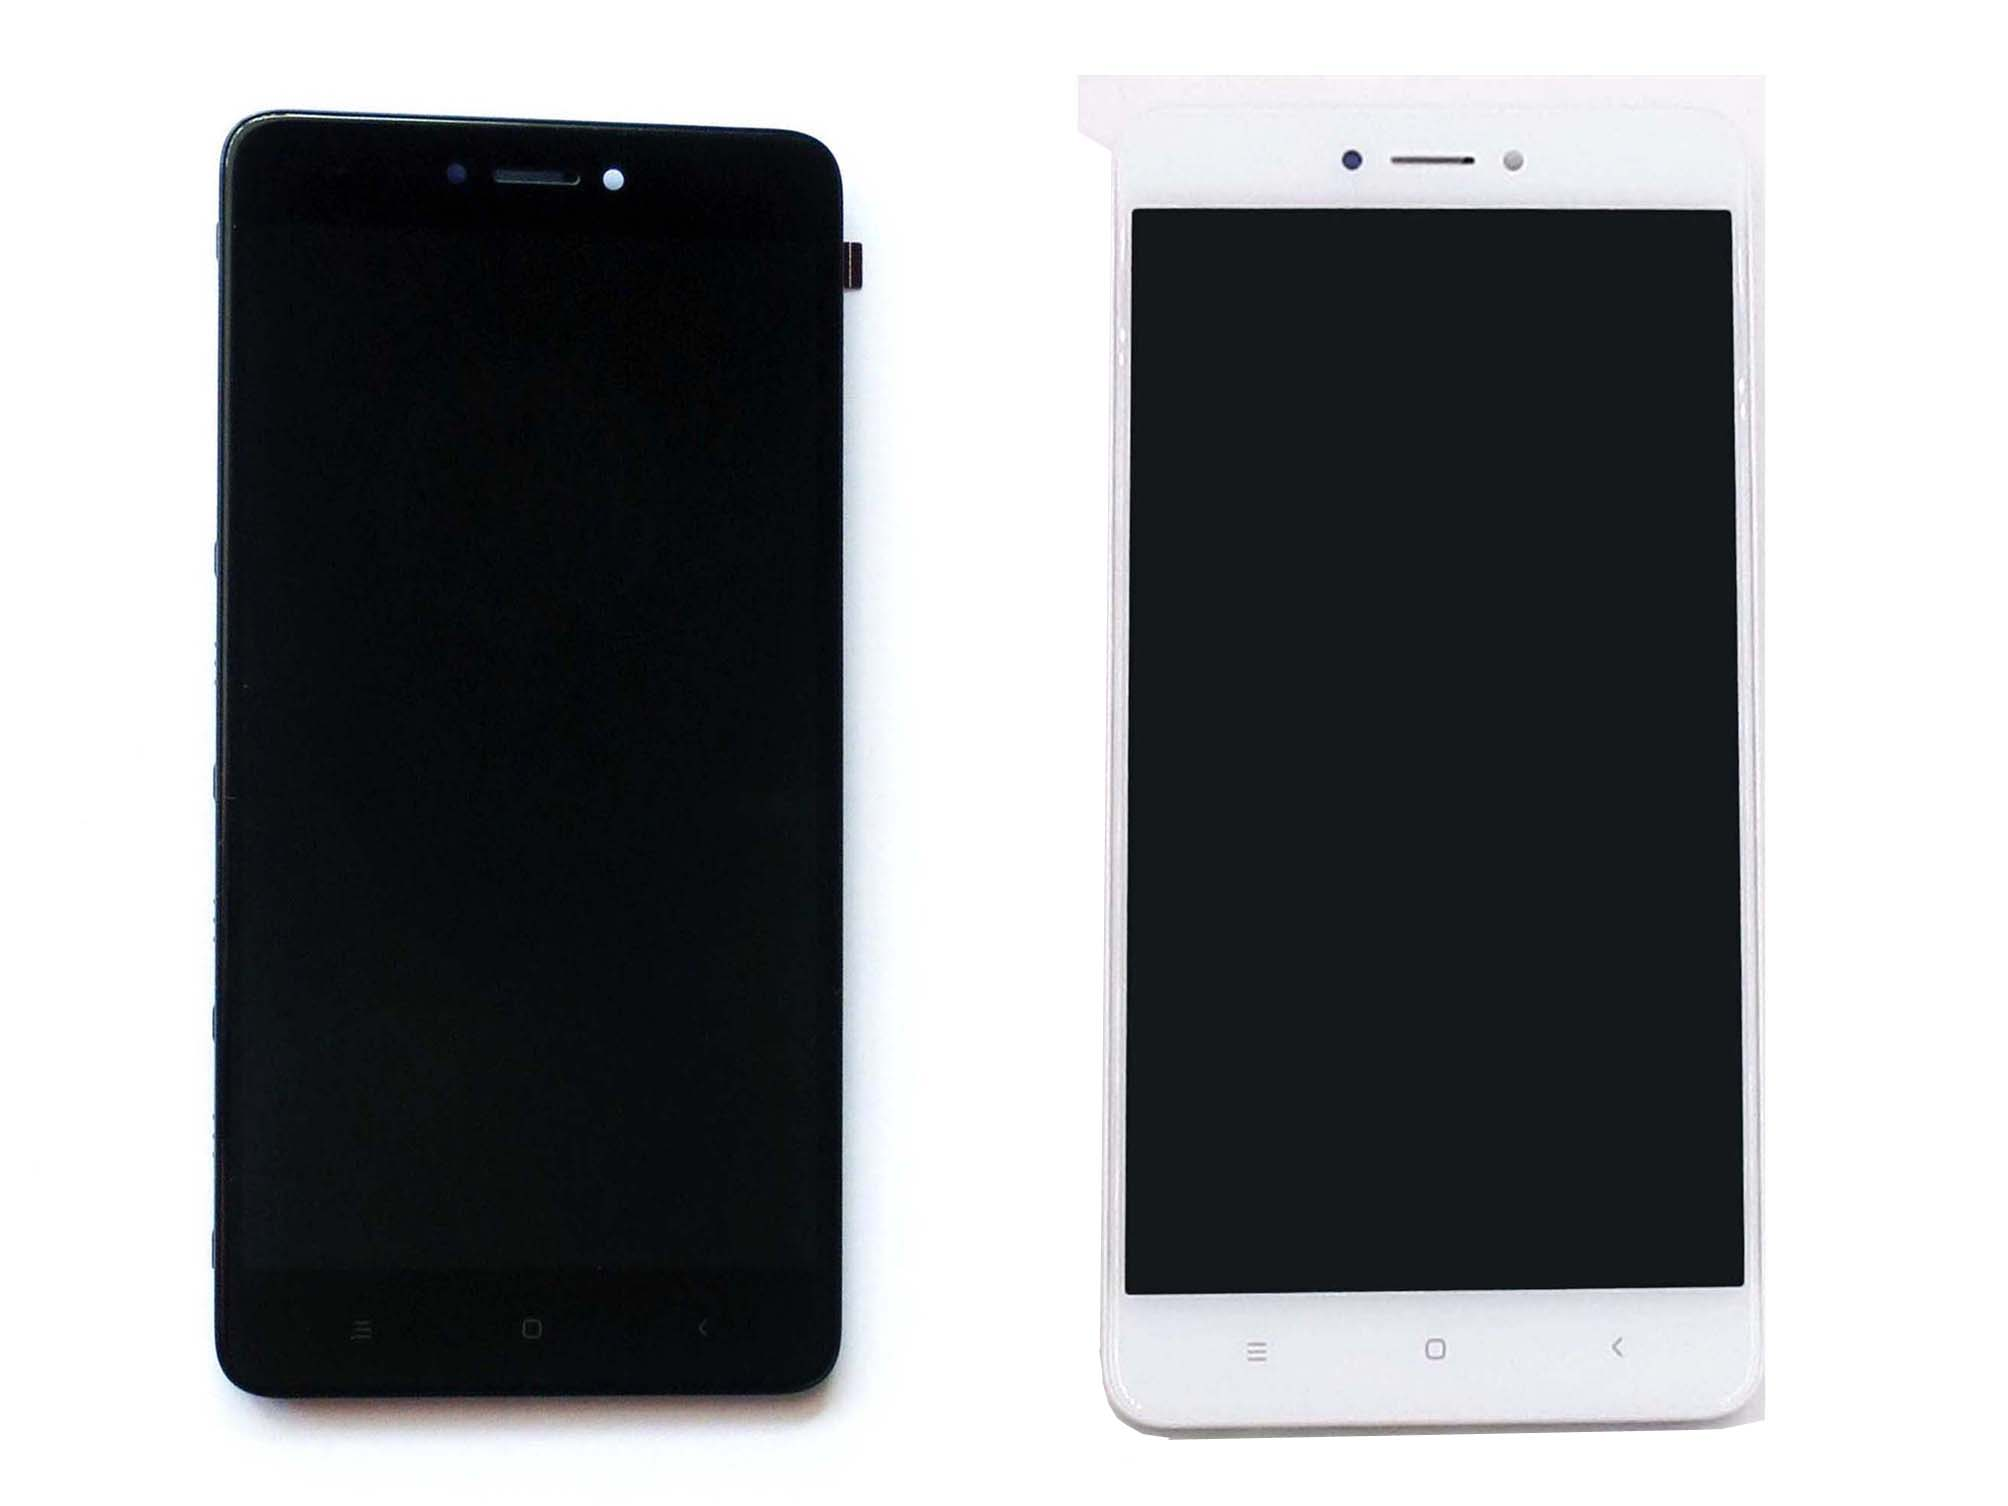 Original Complete screen with front housing for sanpdragon version Redmi note 4x –Black & White